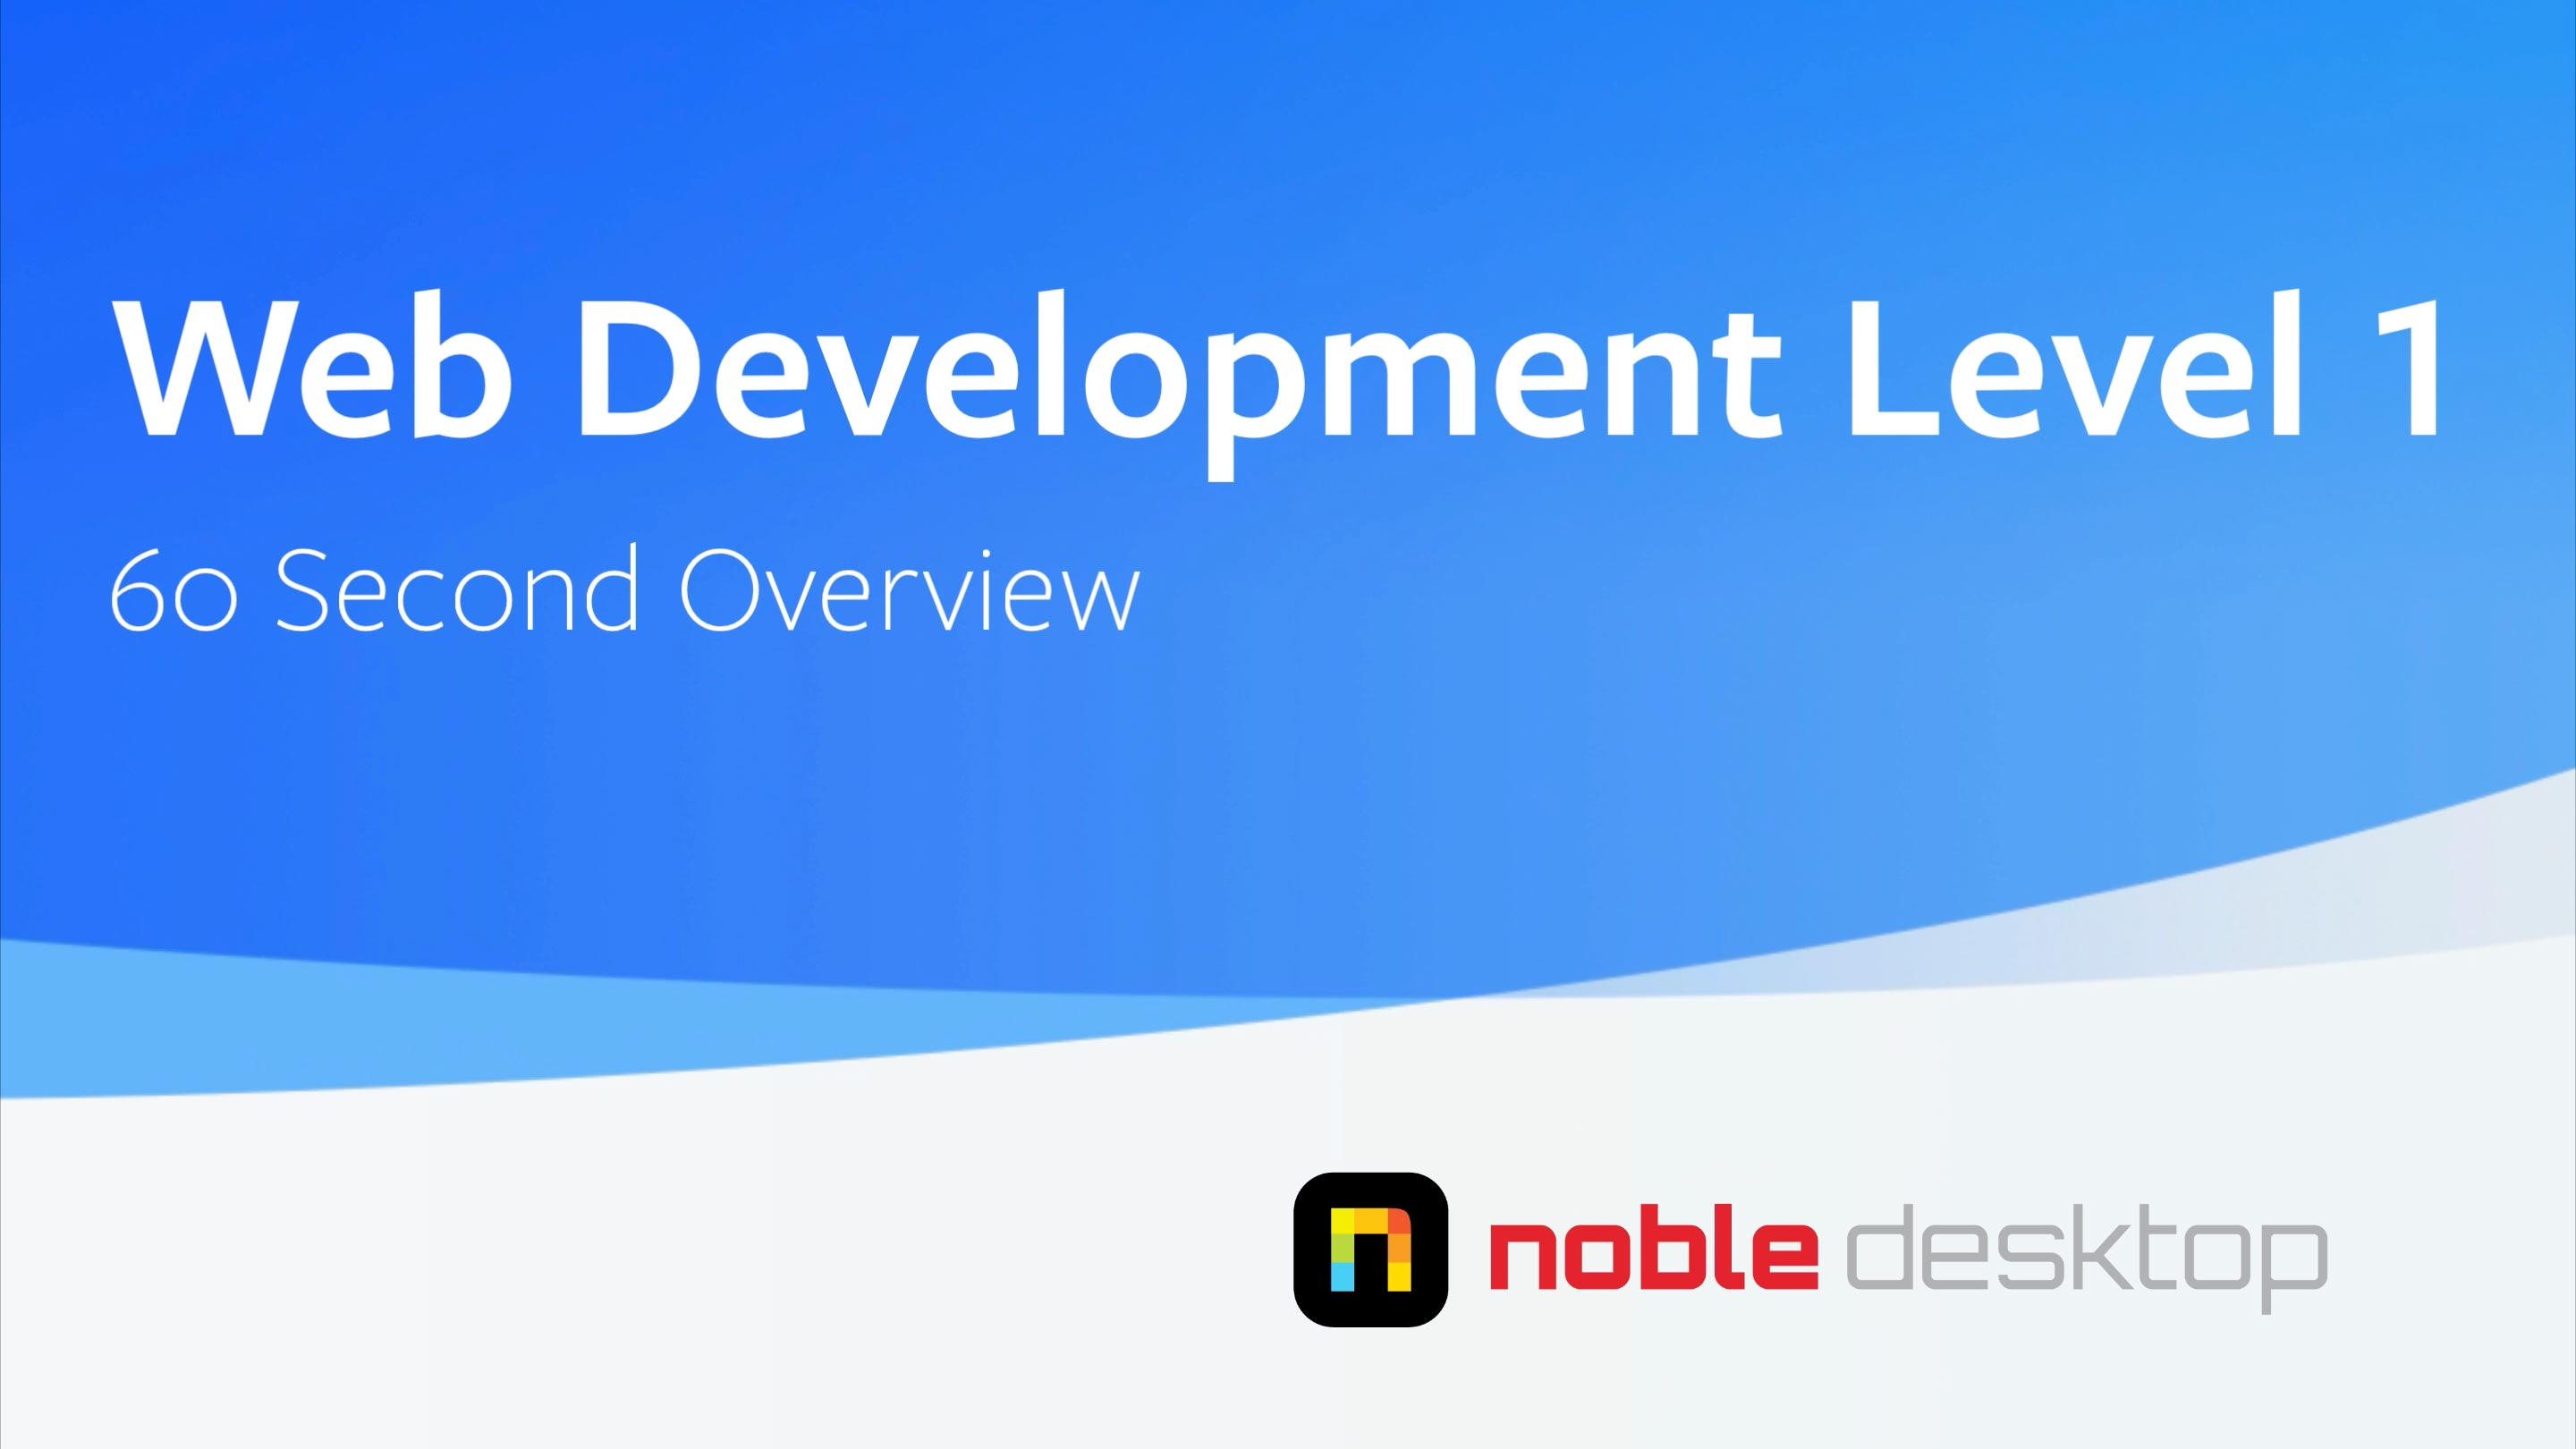 Web Development Level 1 Class Overview